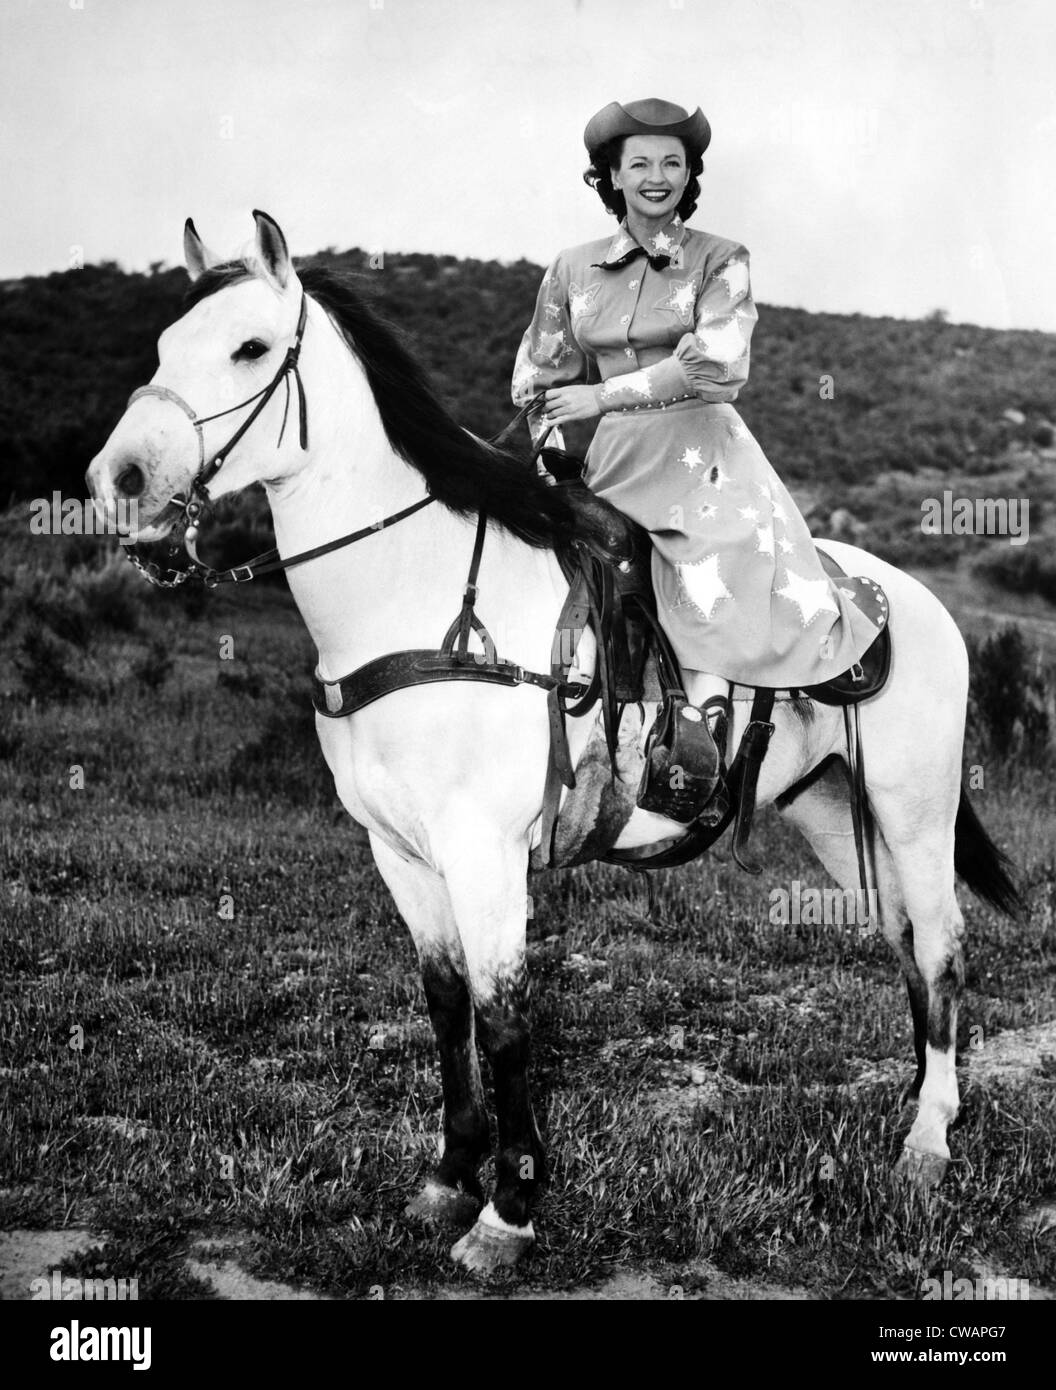 Dale Evans (1912-2001), American actress, singer and wife of Roy Rogers, with her horse Buttermilk, circa 1956. - Stock Image